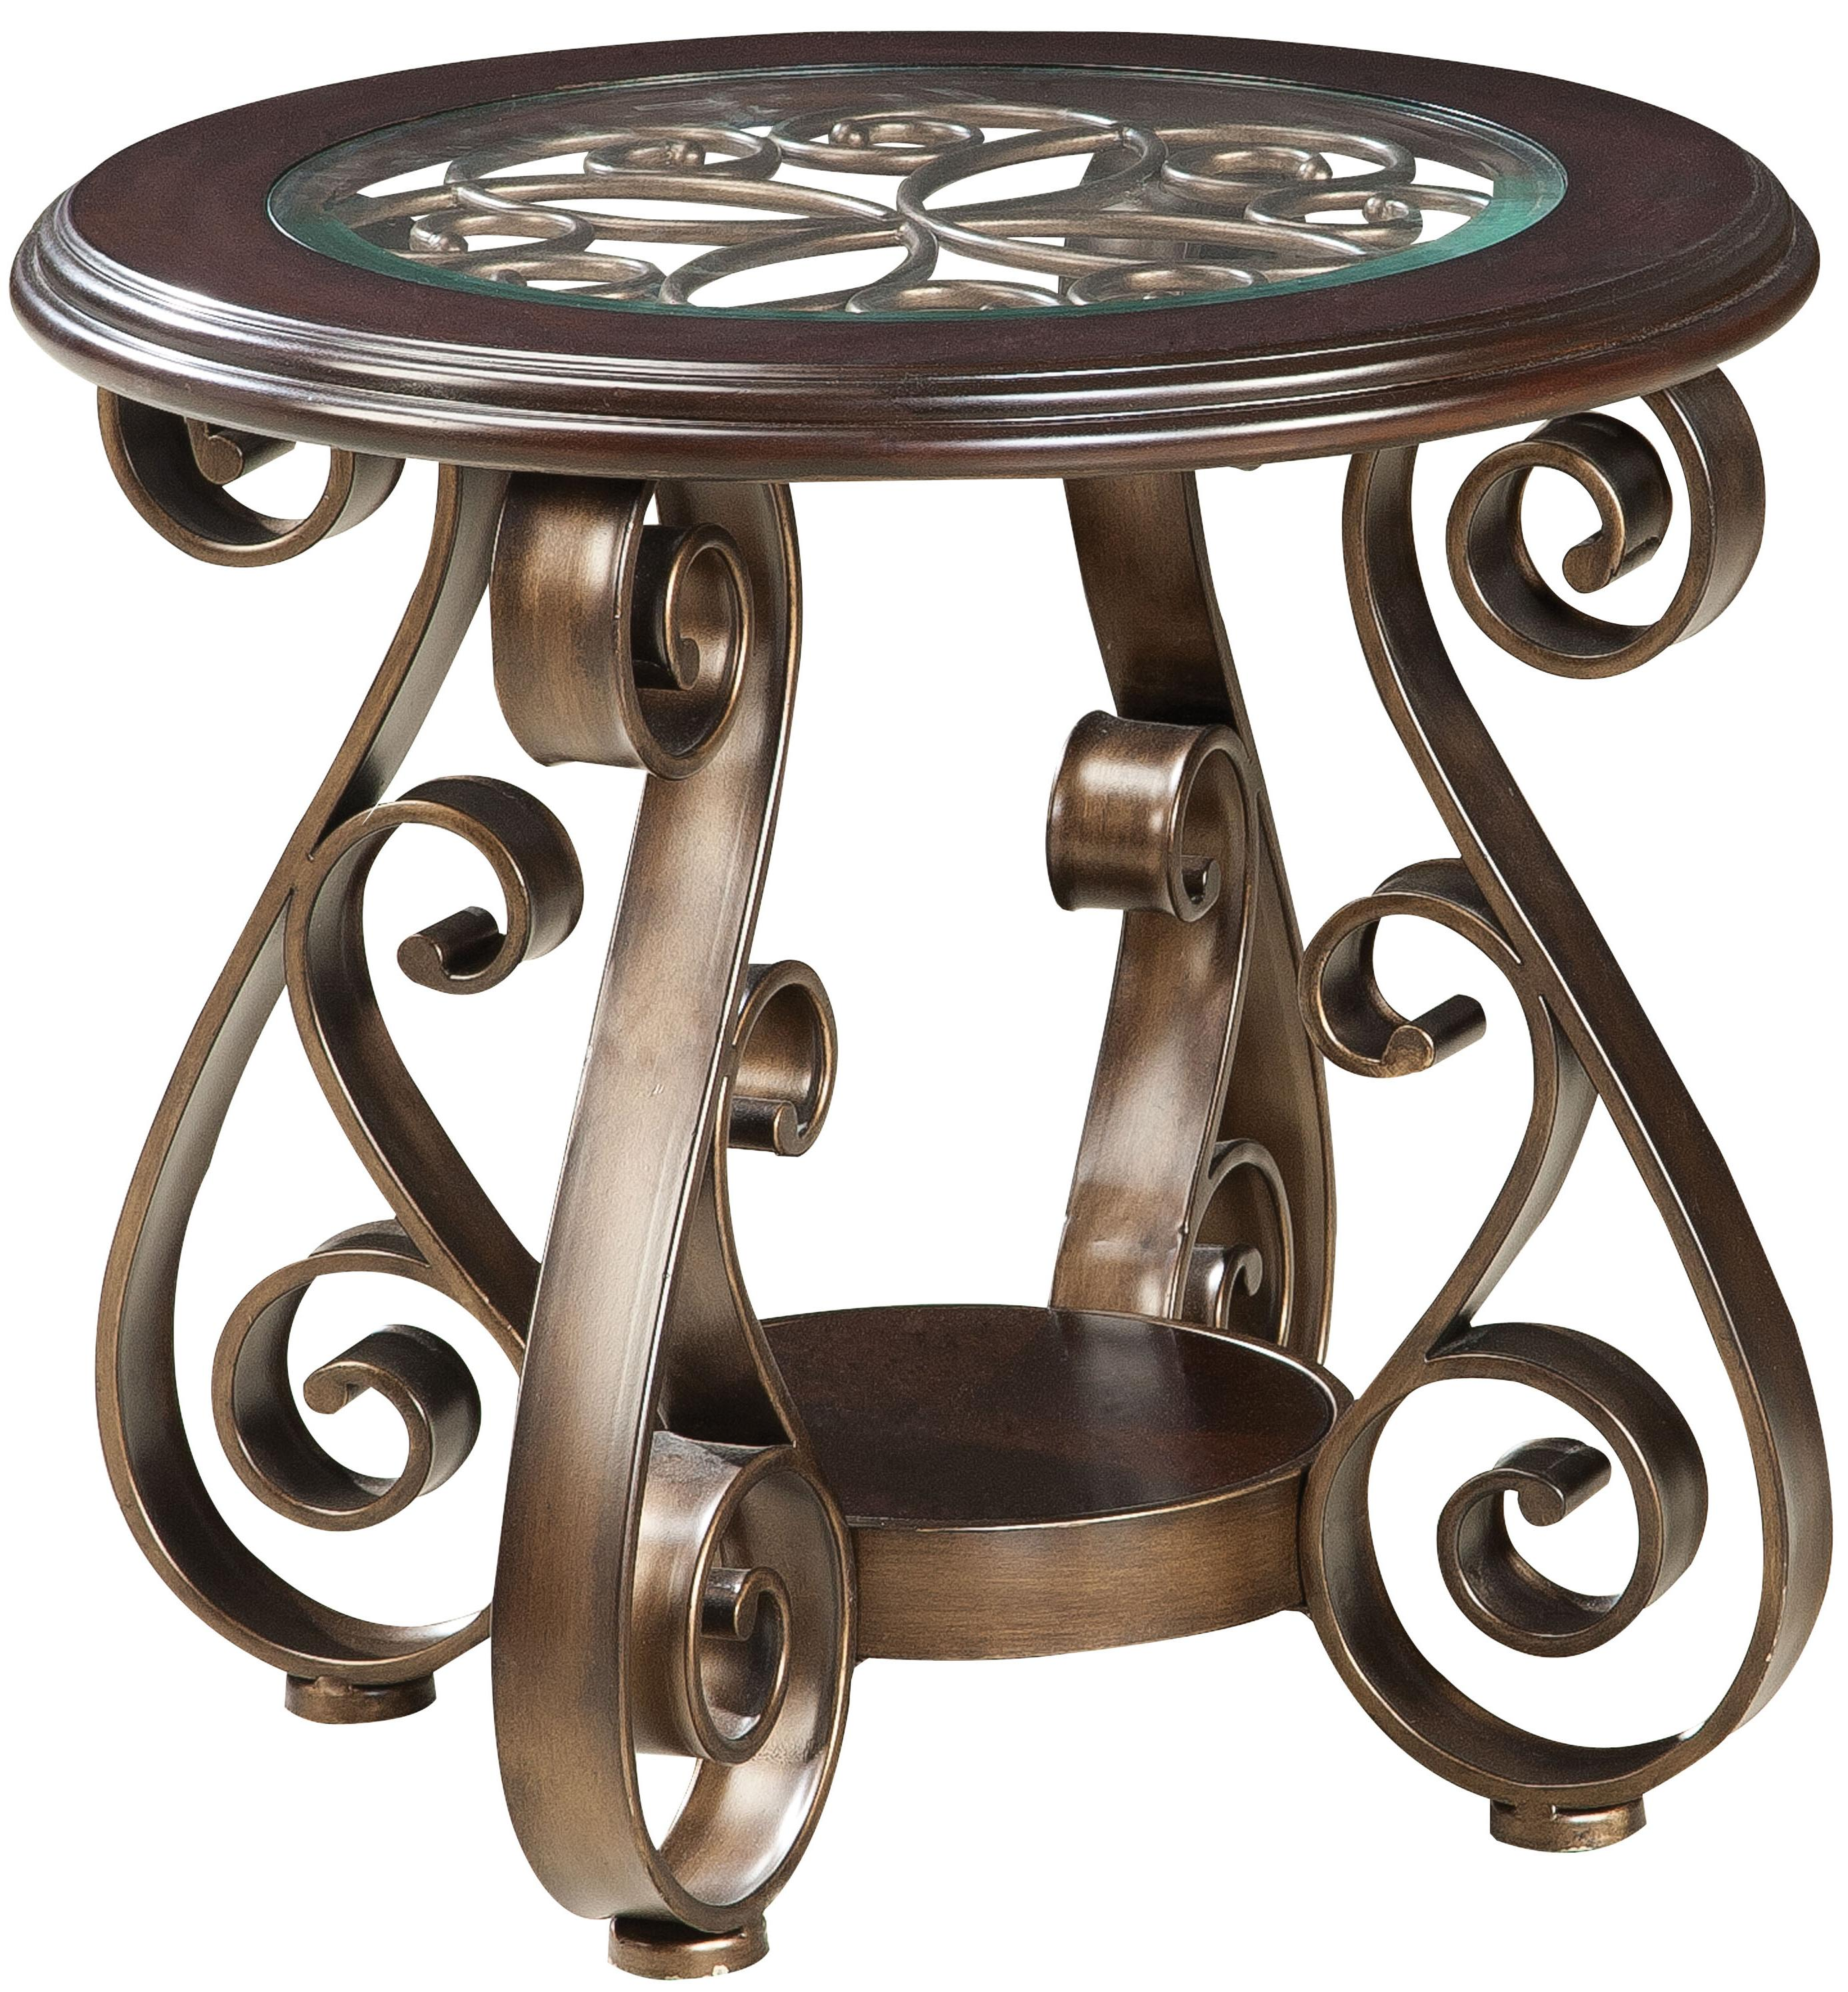 Scrolled metal and wood coffee table - Standard Furniture Bombay Old World End Table Item Number 21602